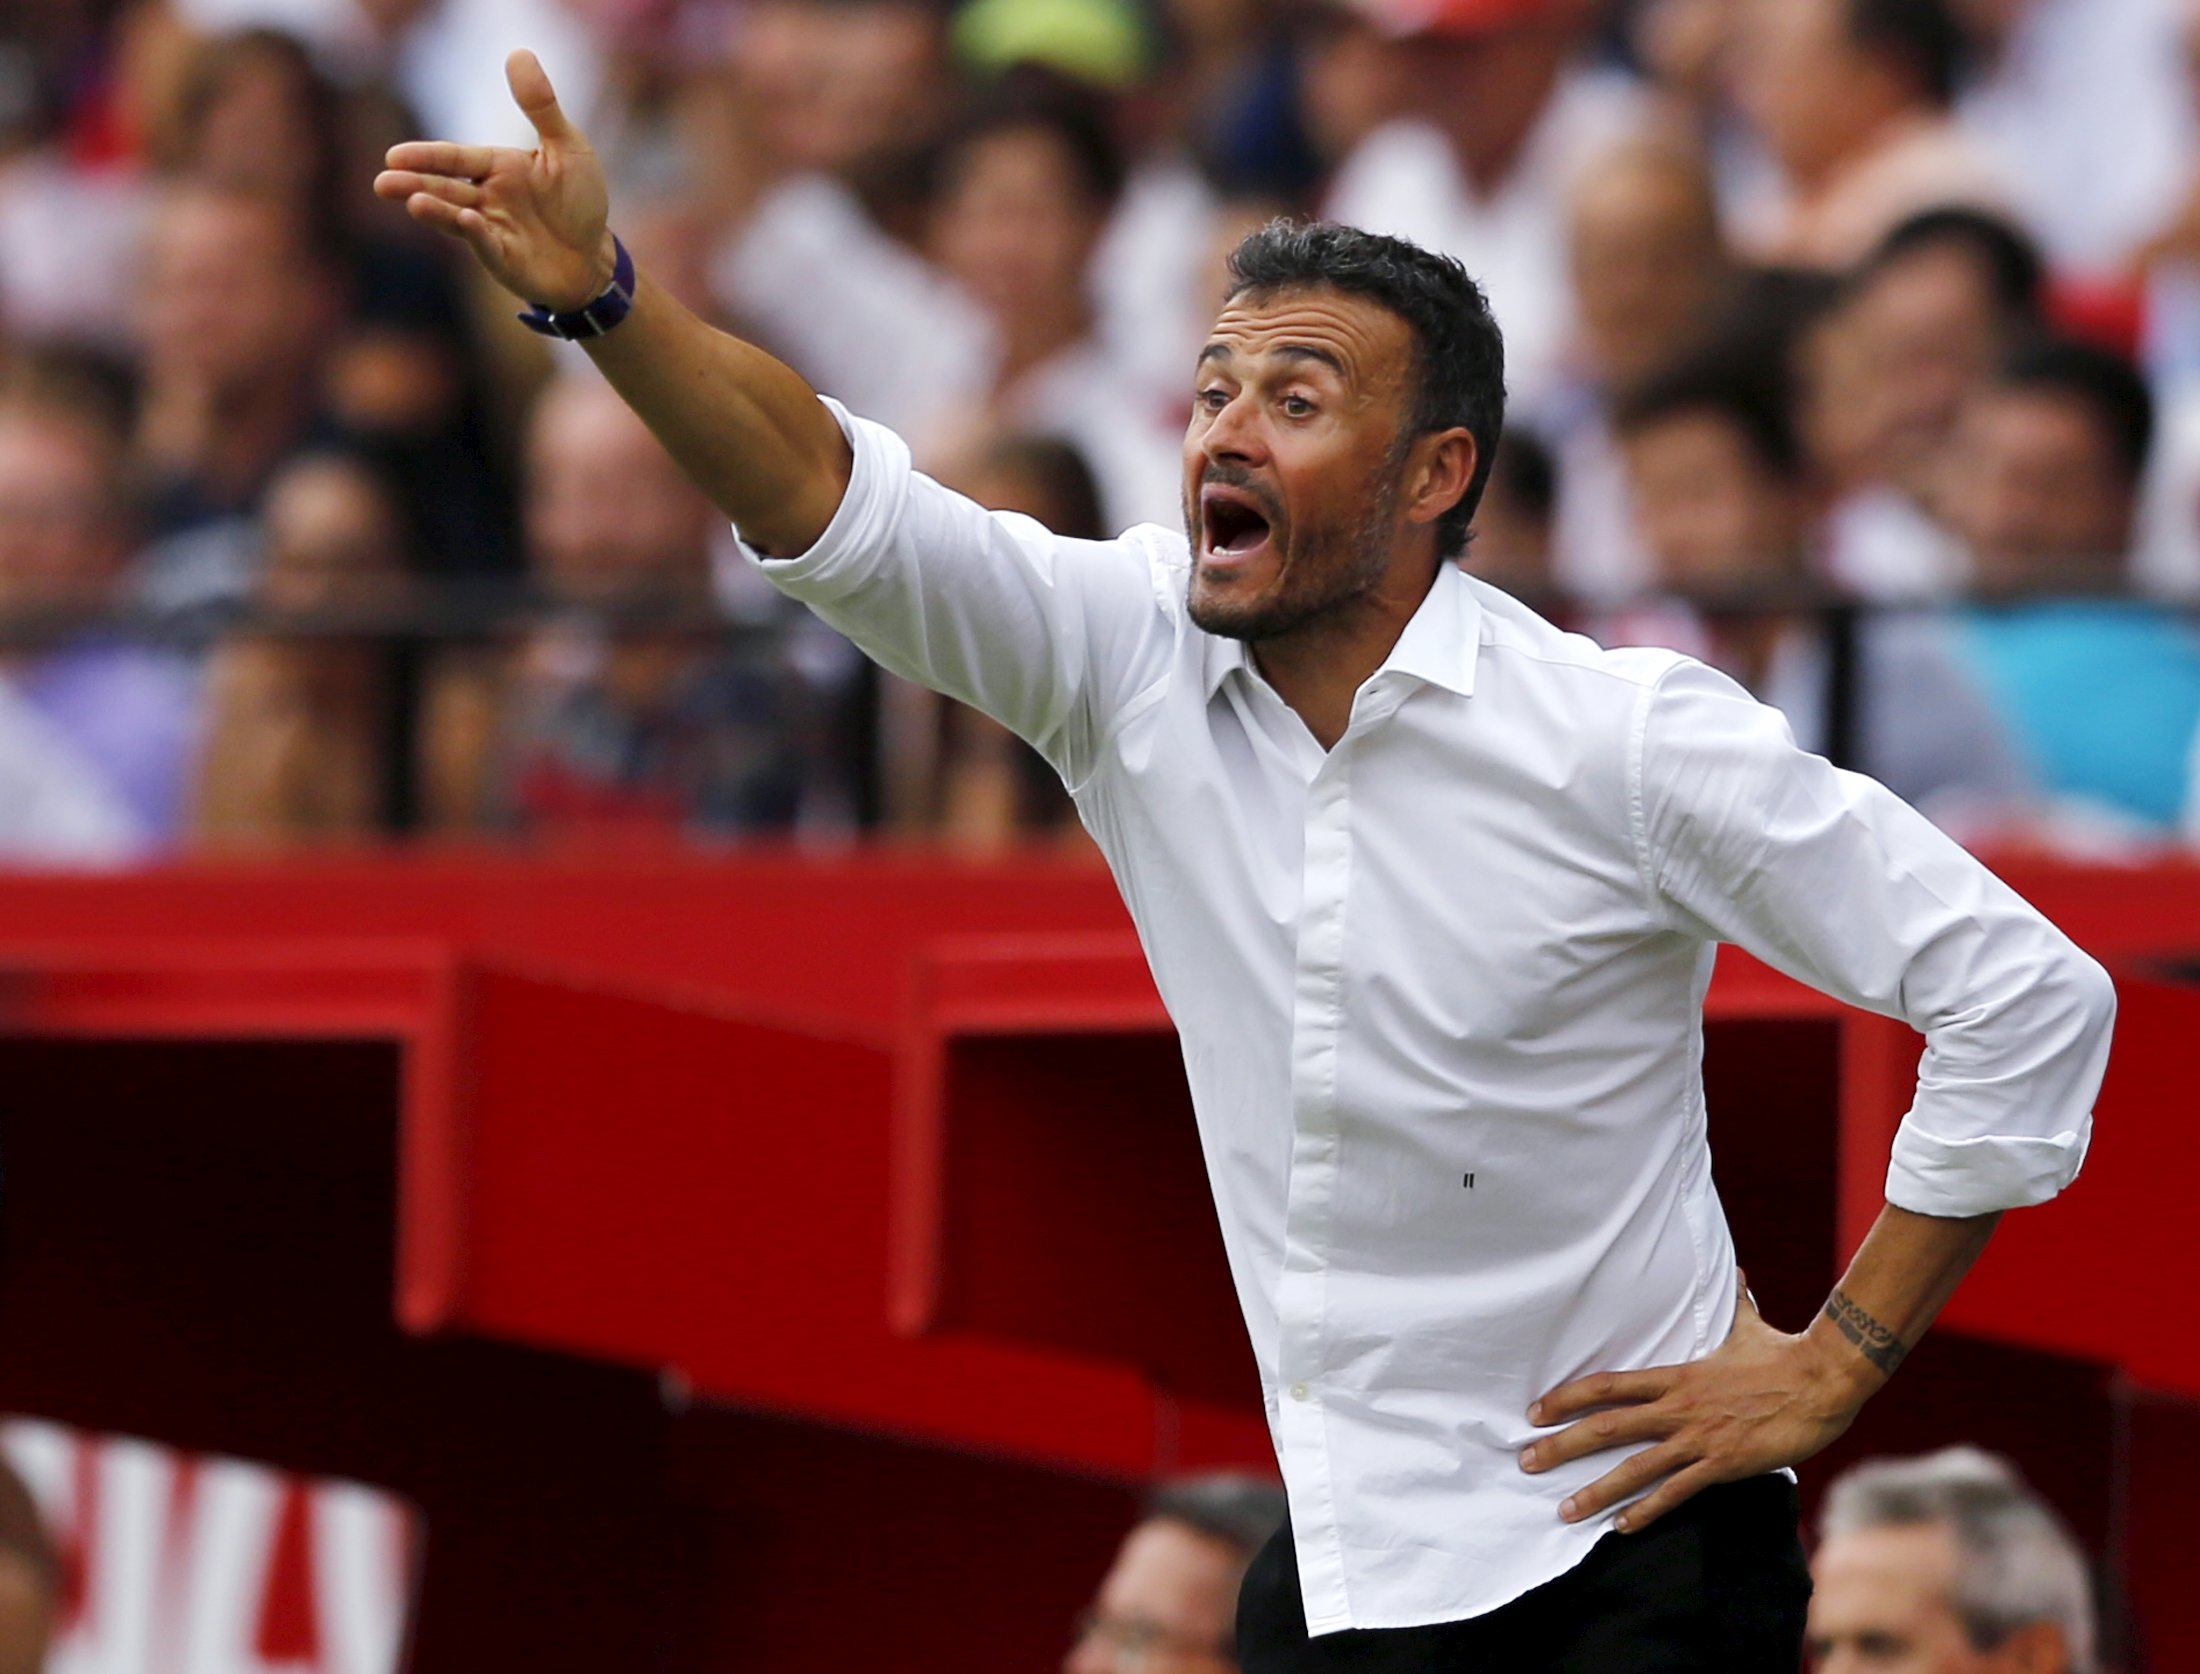 Barcelona's coach Luis Enrique reacts during their Spanish first division soccer match against Sevilla at Ramon Sanchez Pizjuan stadium in Seville, southern Spain, October 3, 2015. REUTERS/Marcelo del Pozo